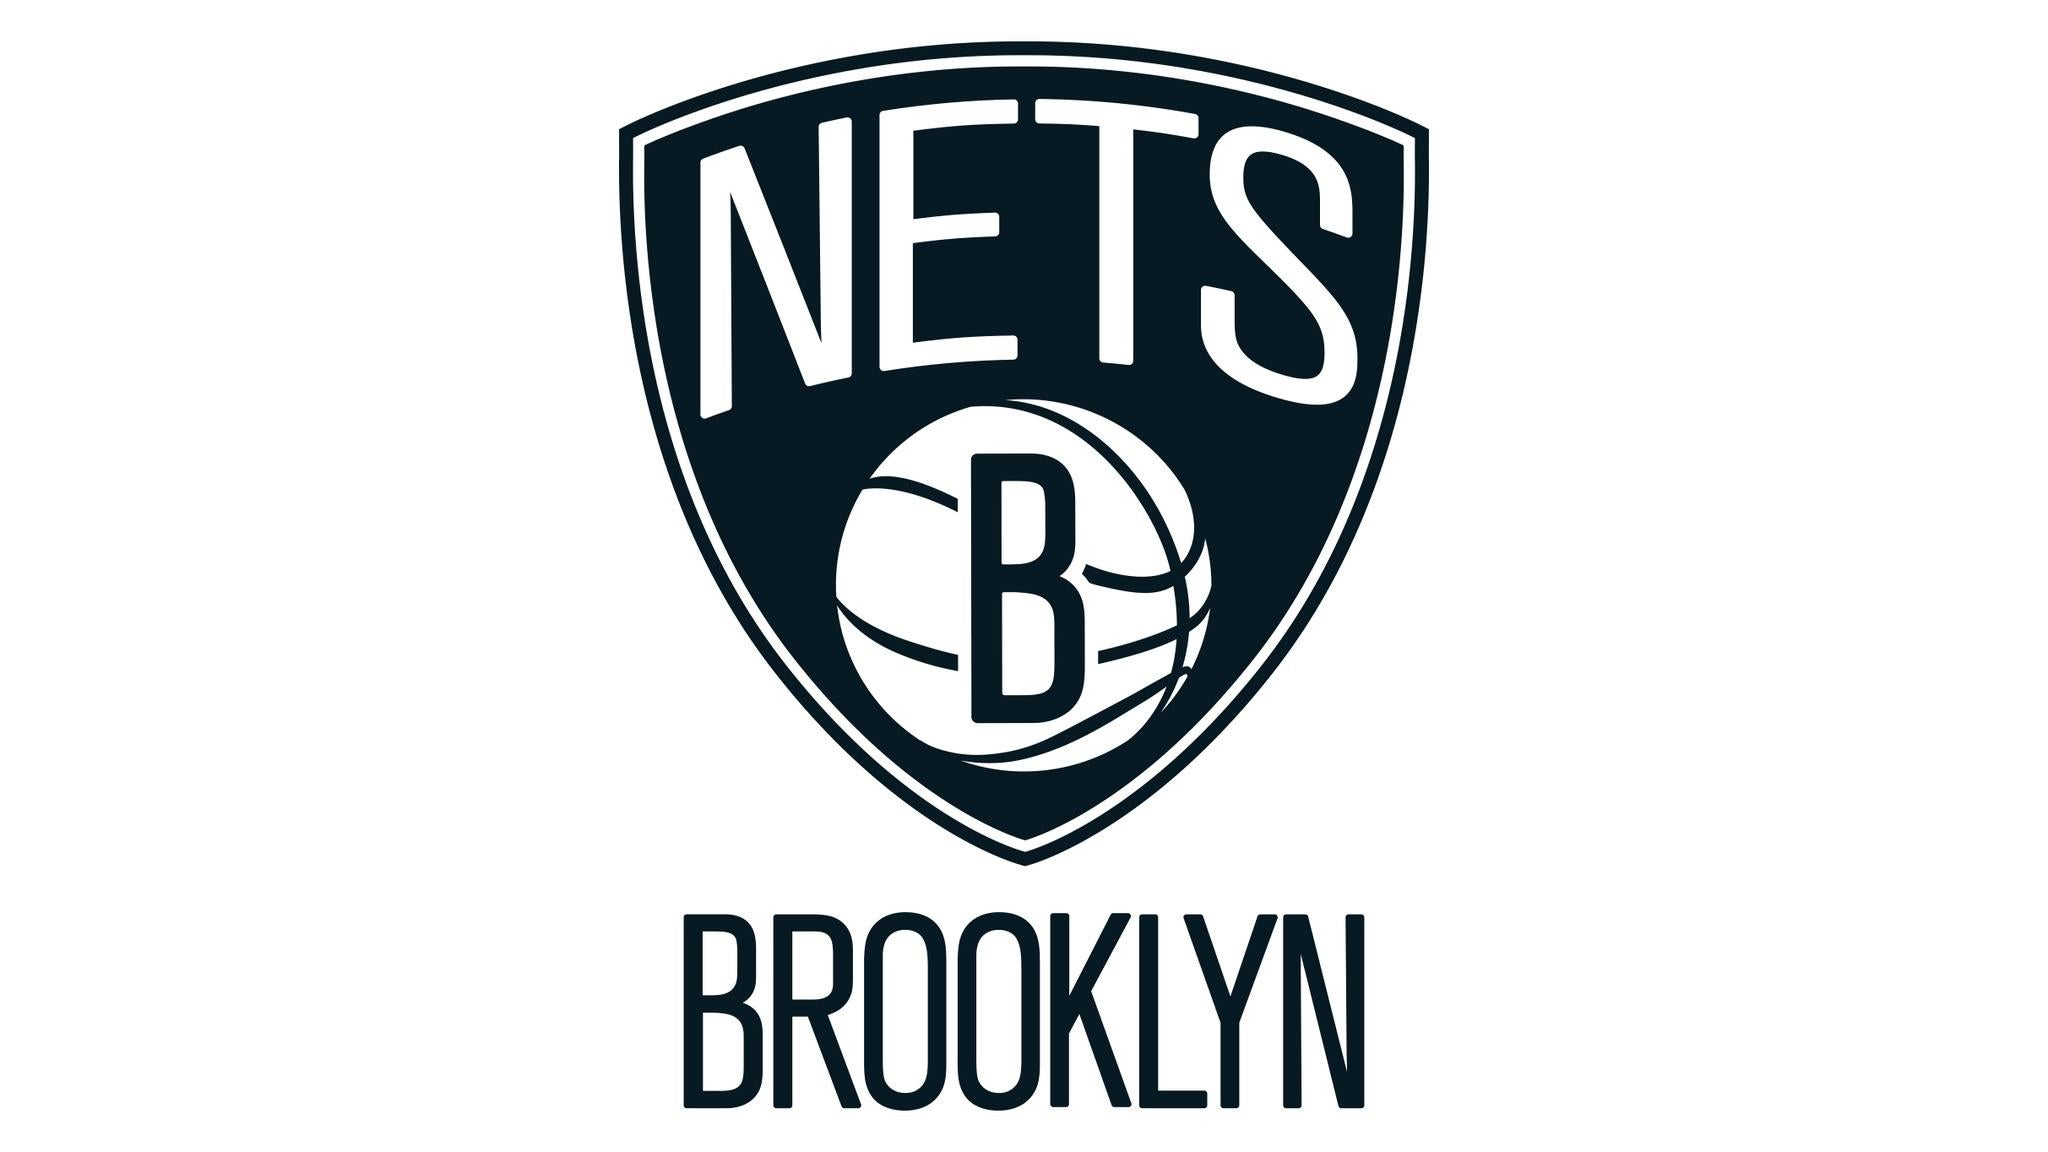 Brooklyn Nets v. Chicago Bulls